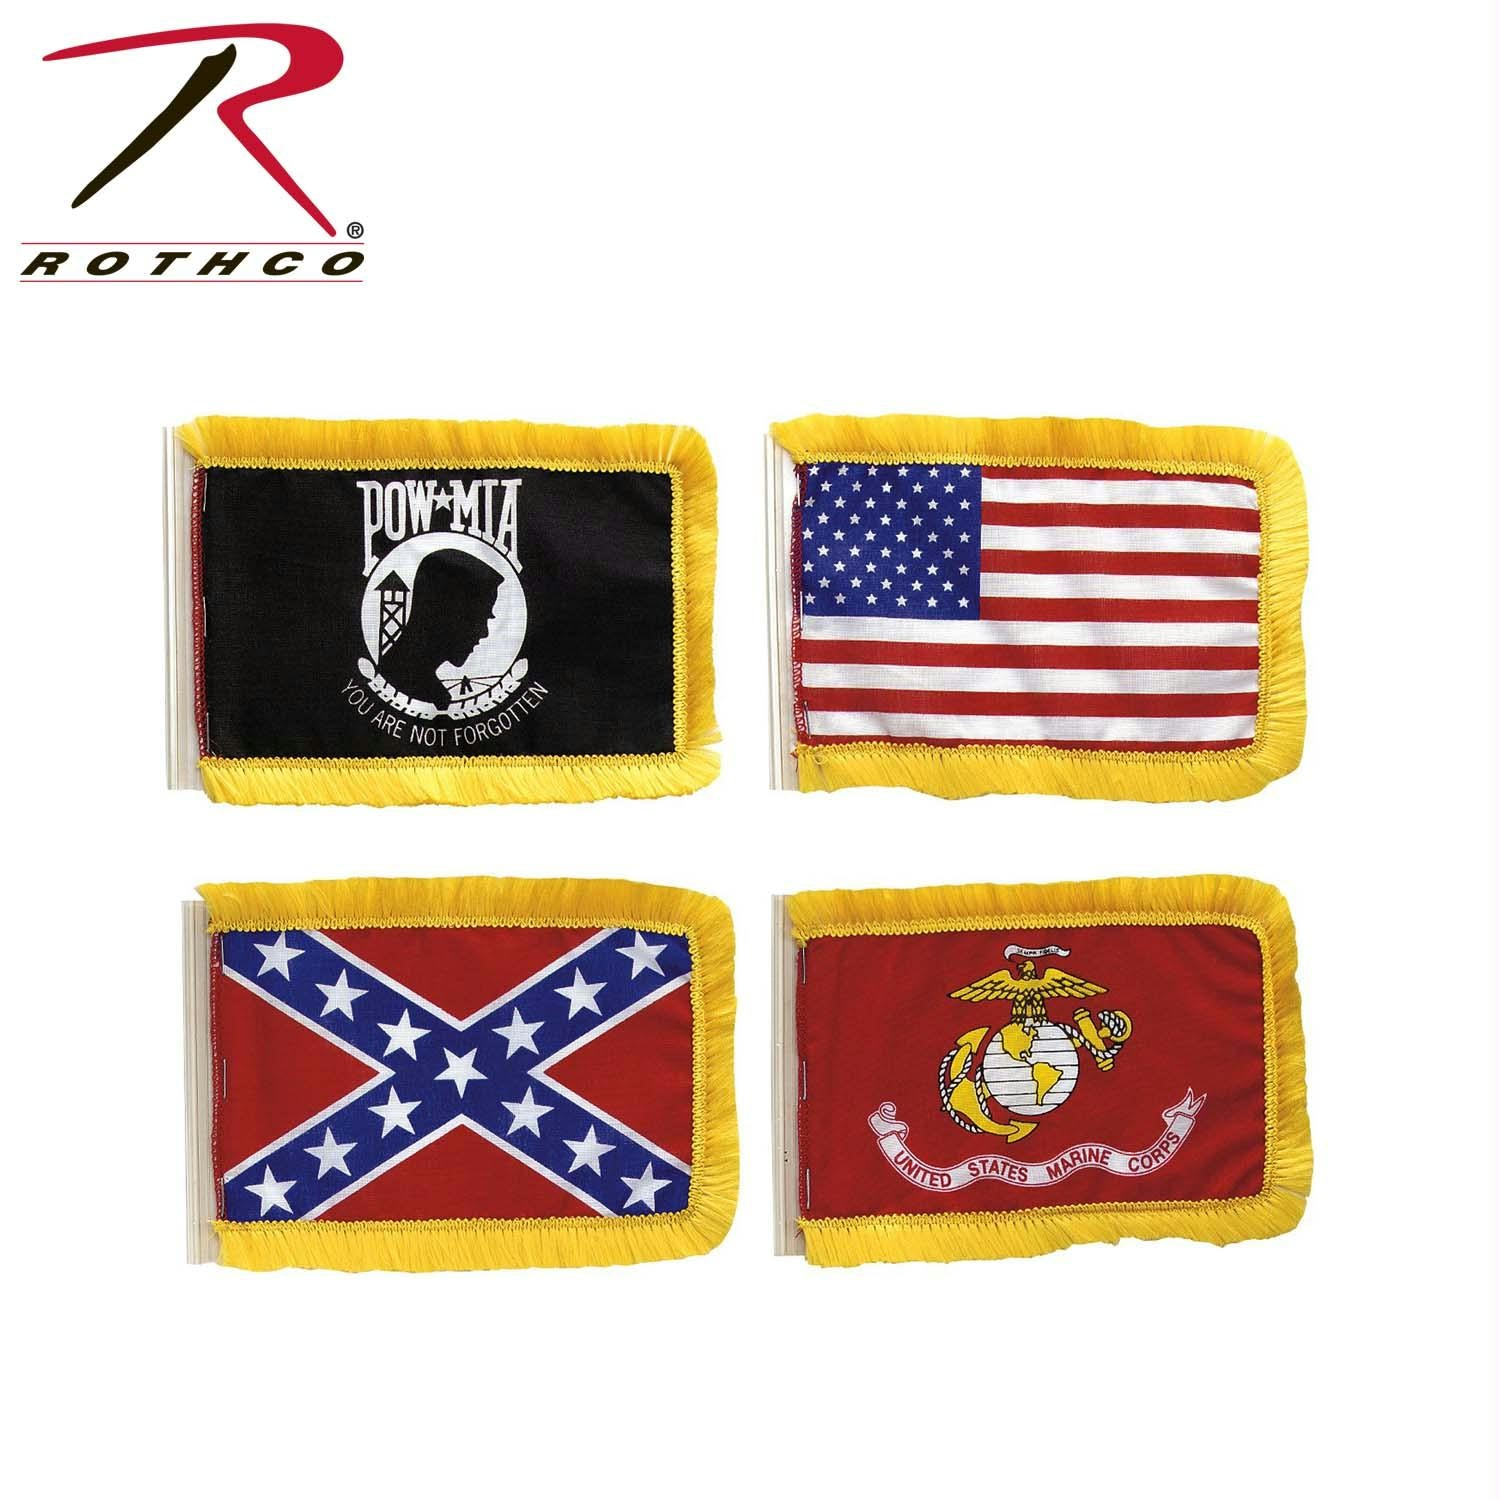 Rothco Antenna Flags - US